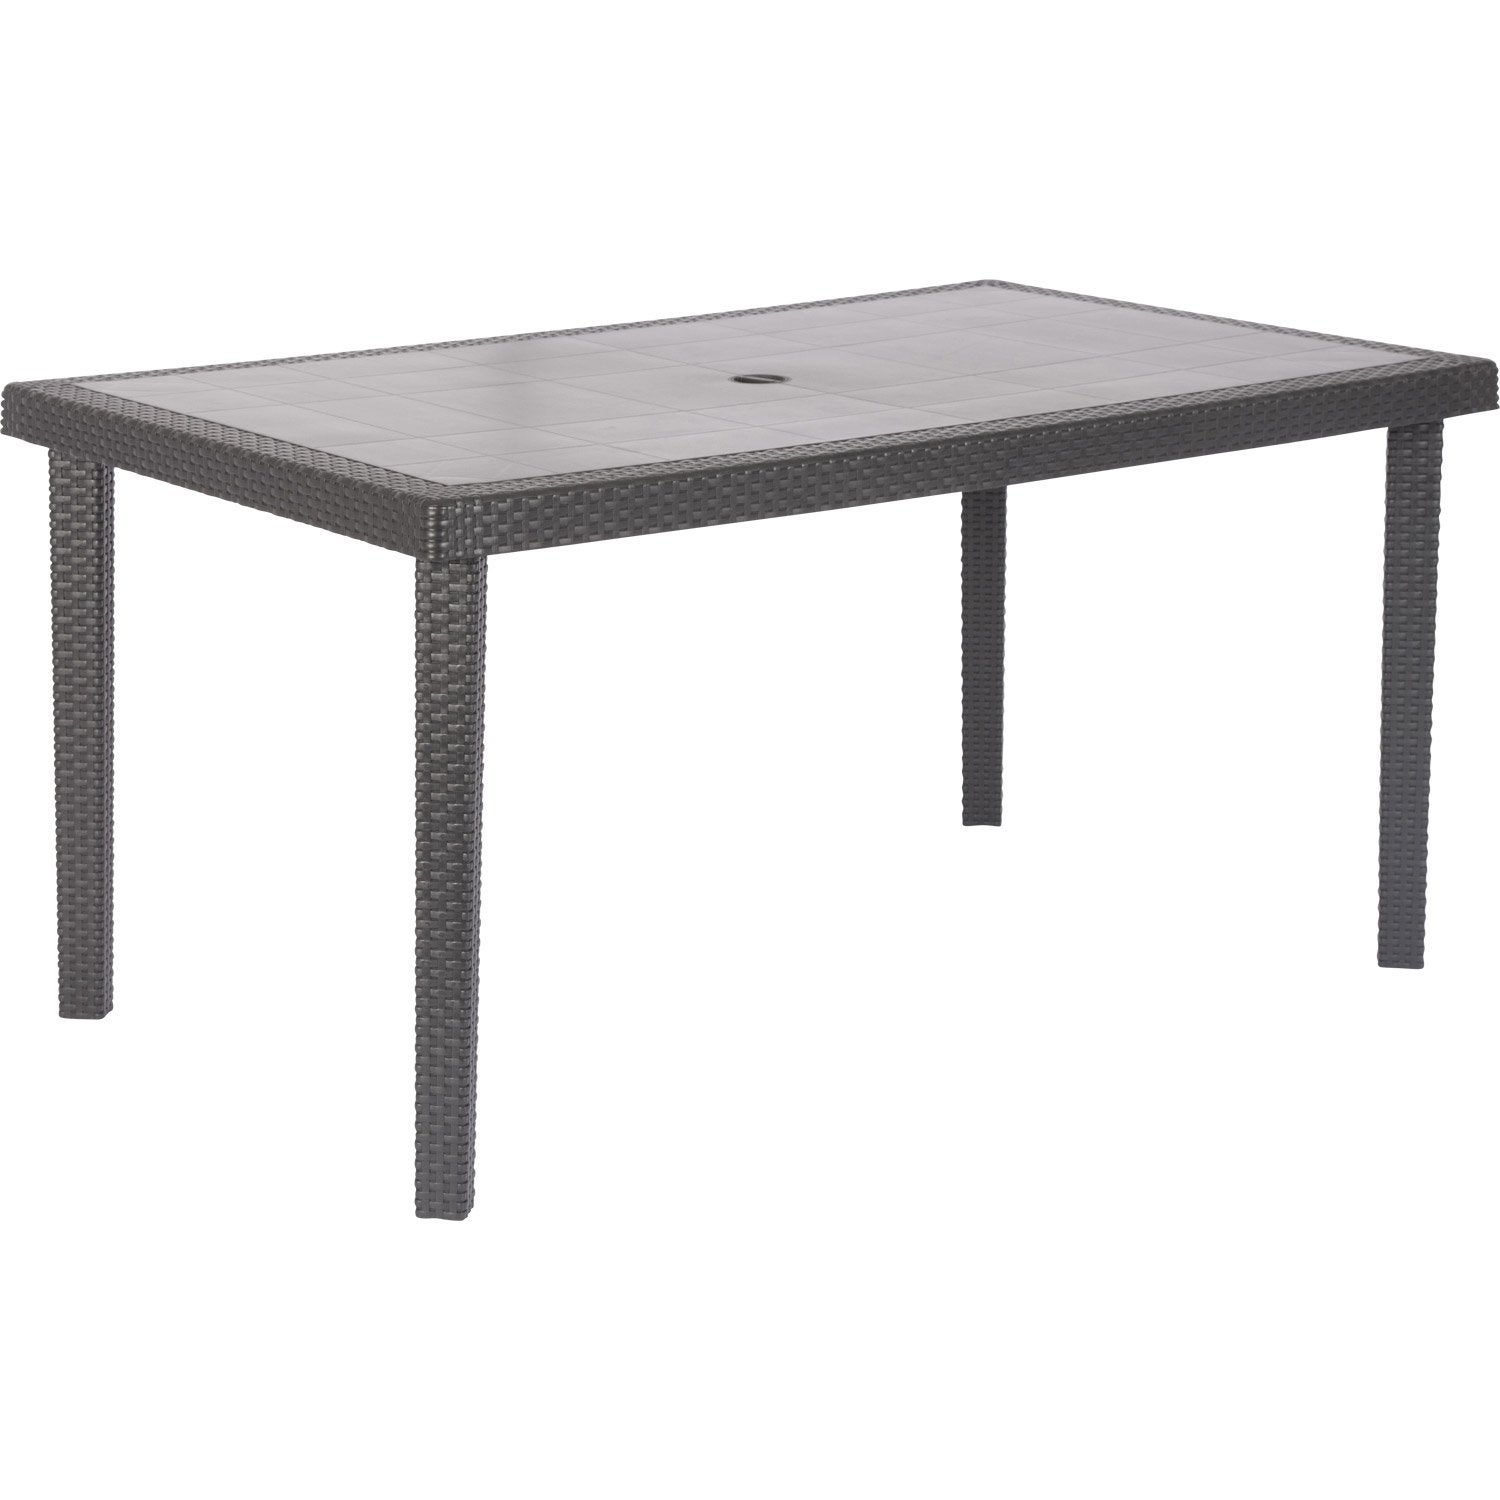 Table de jardin boh me rectangulaire anthracite 6 for Leroy merlin table jardin